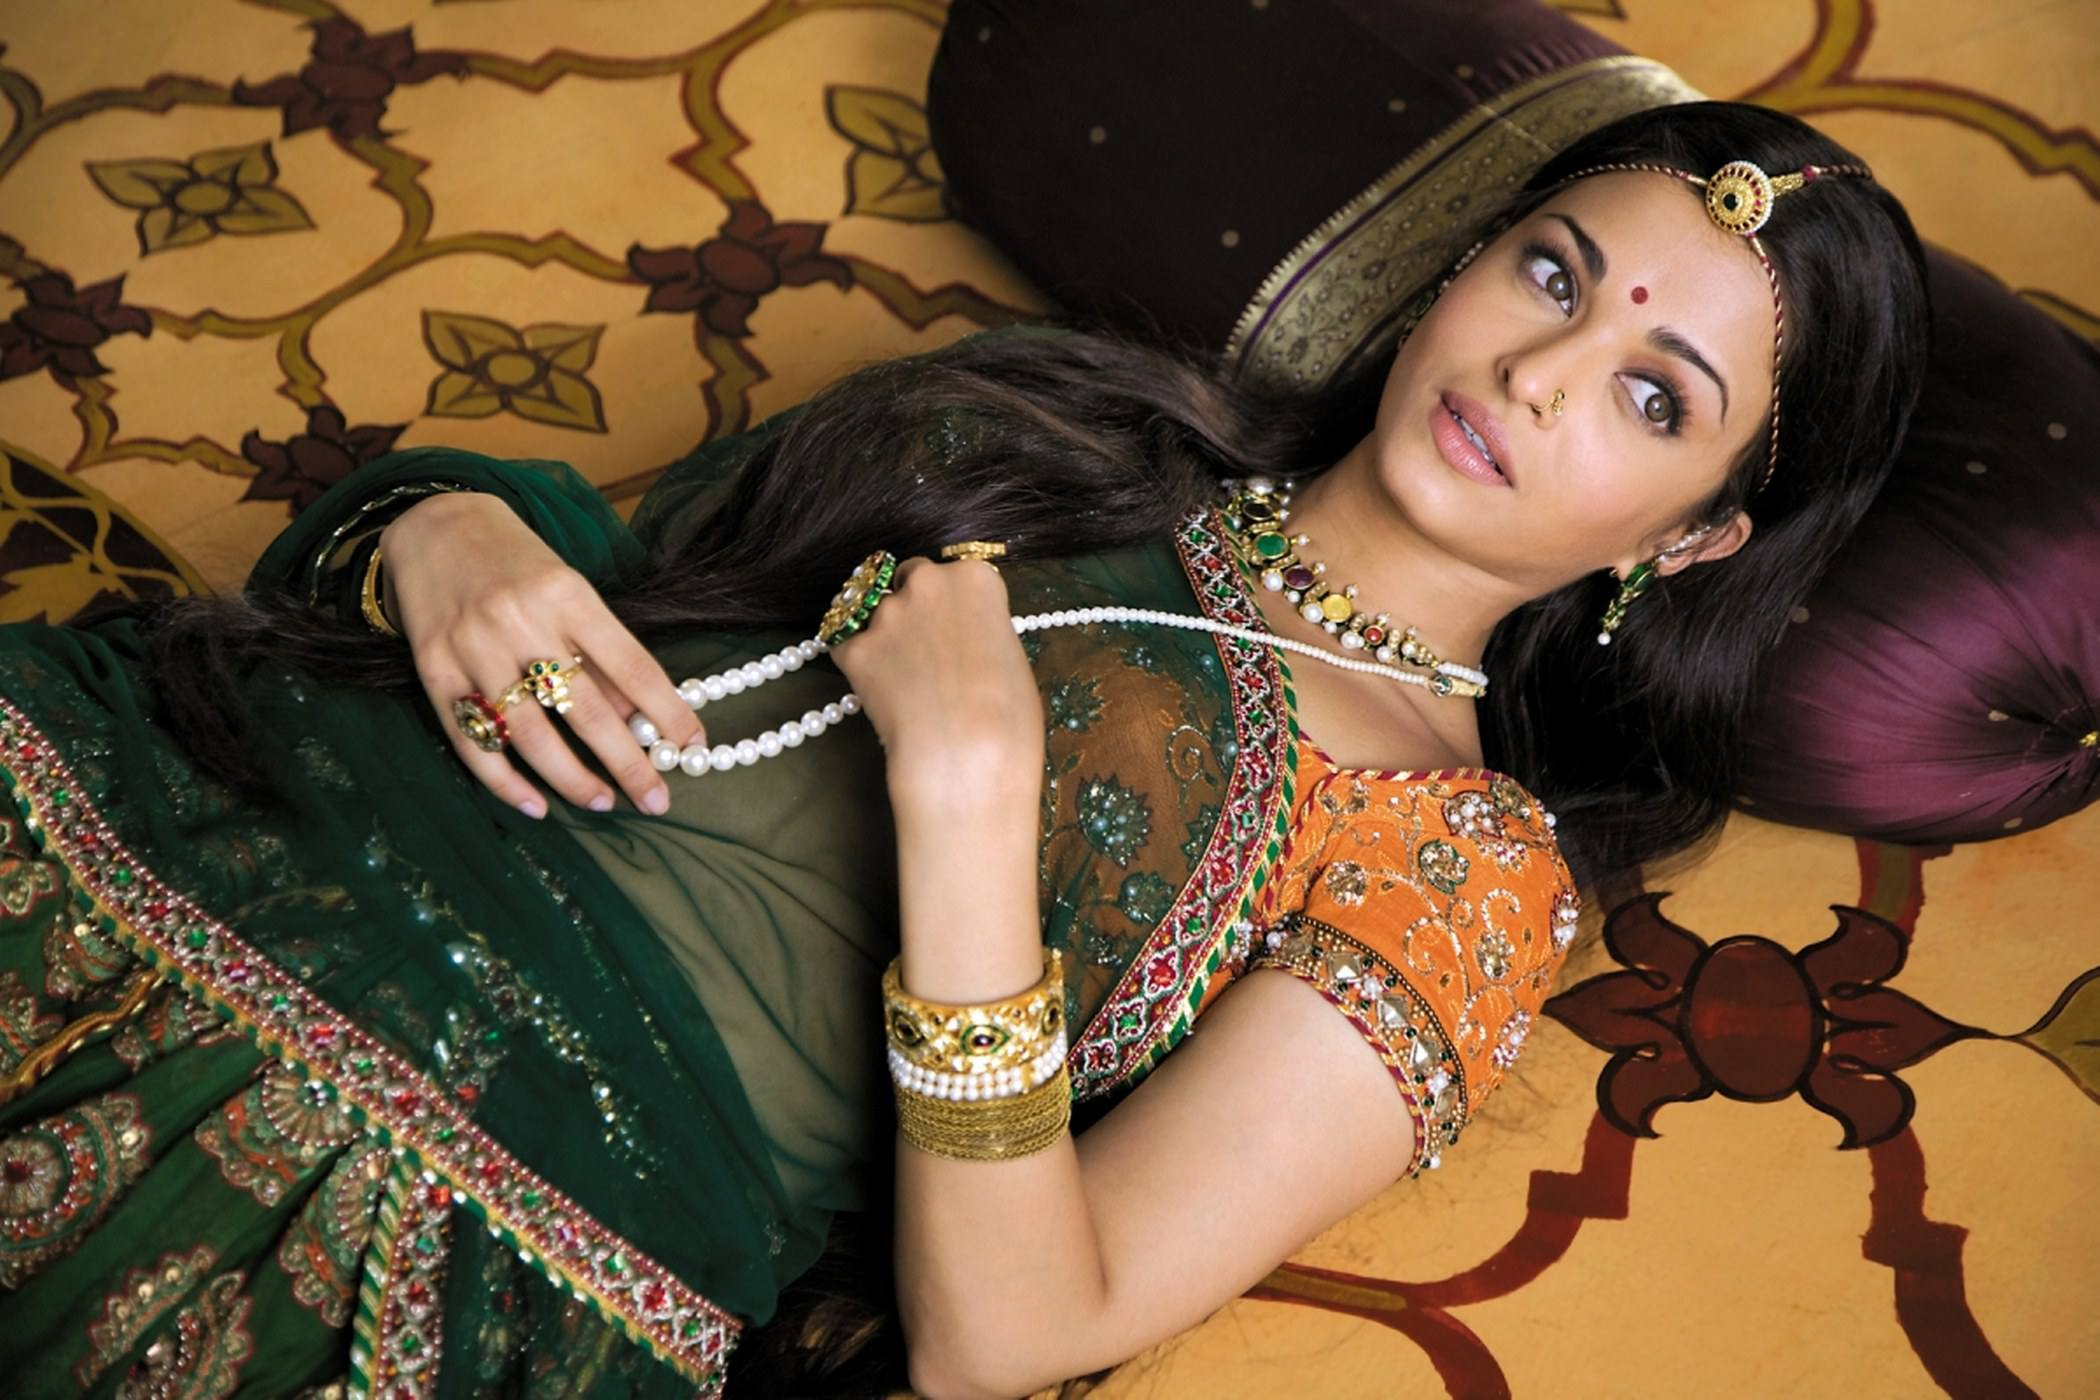 aishwarya_rai-wallpaper_2147483673